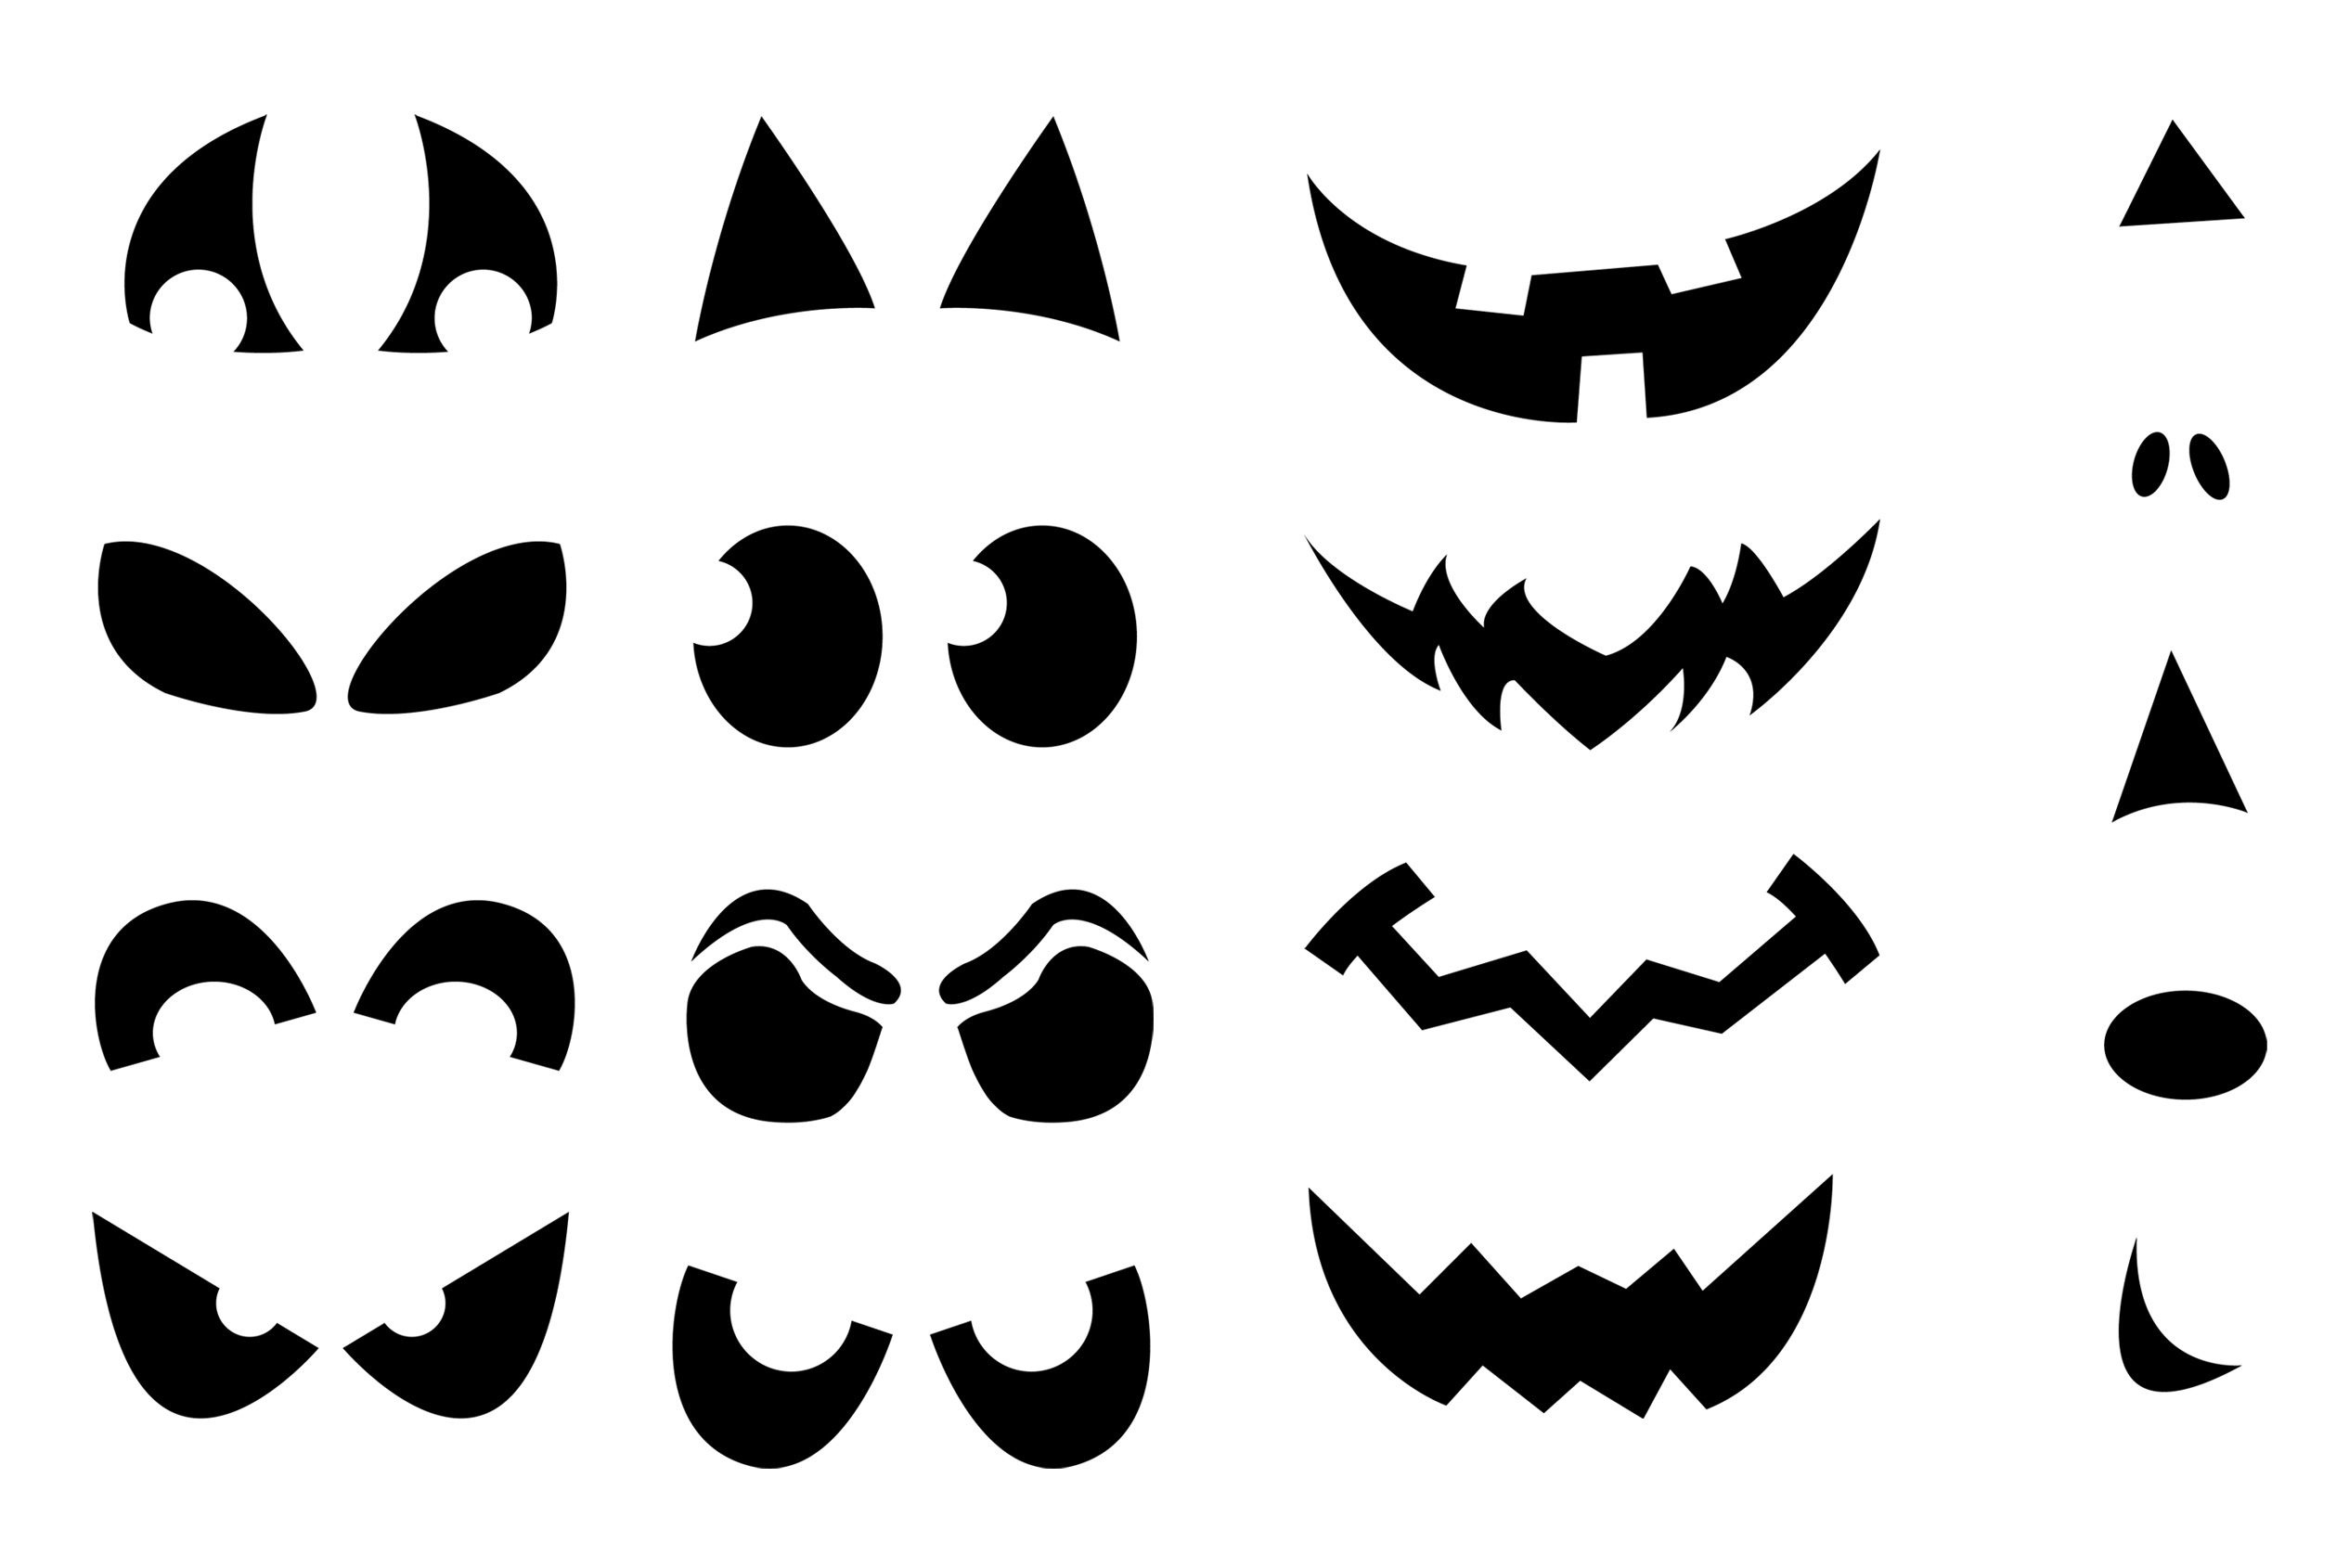 Shapes For Ghost Eye Cutouts | After The Face Is Picked Out Cut Out - Free Printable Scary Pumpkin Patterns